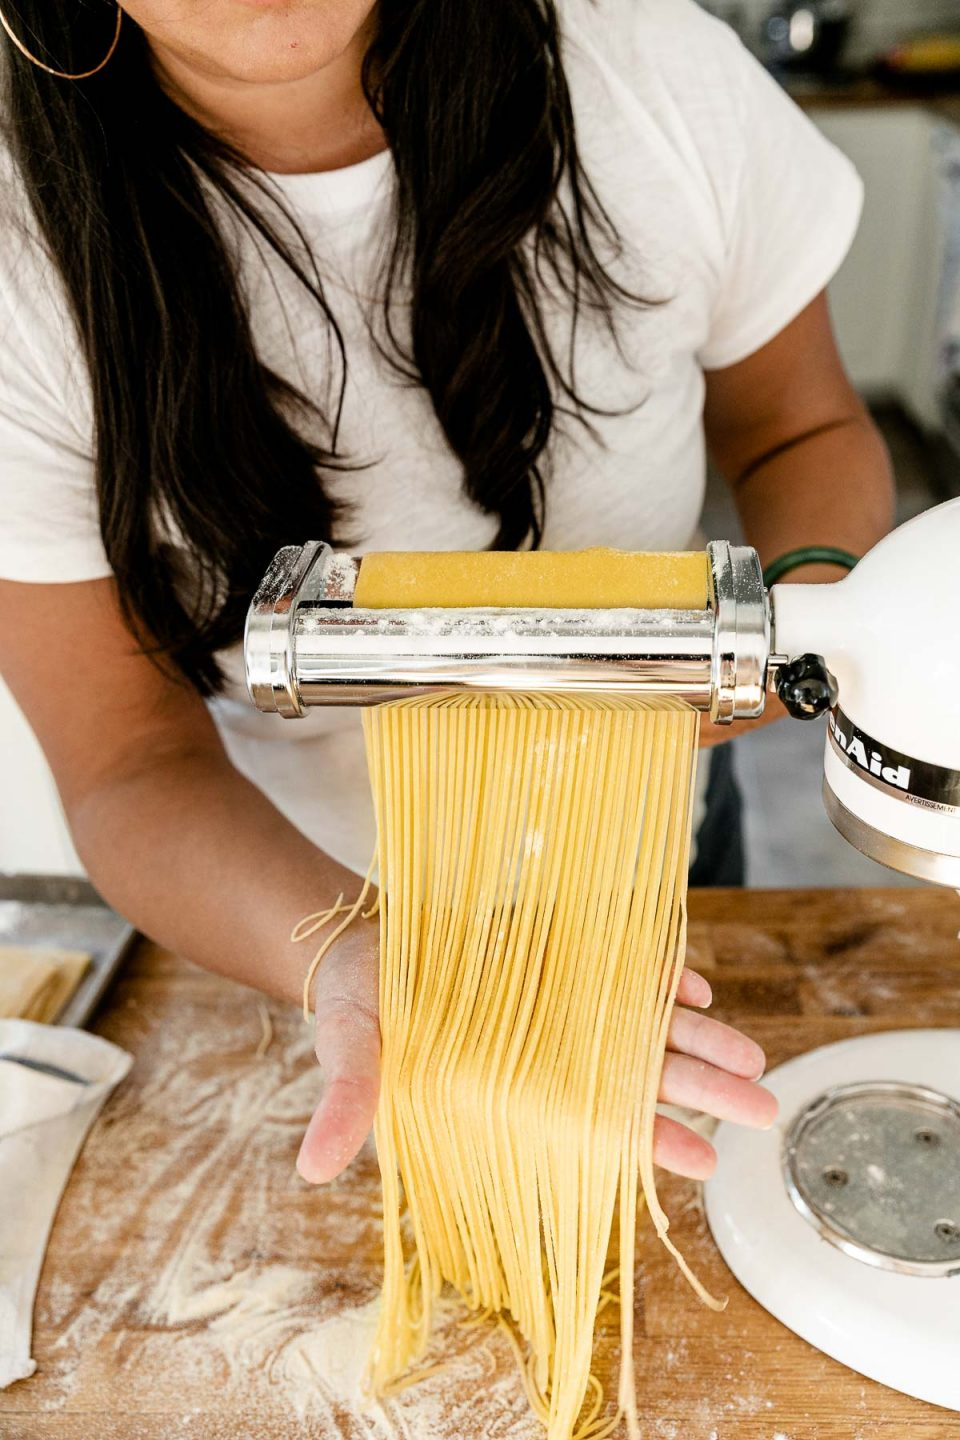 Jess of Plays Well With Butter feeds a large sheet of fresh pasta dough through a KitchenAid pasta cutting attachment connected to a Stand Mixer. As the pasta dough is fed through the cutter, the dough is cut into single strands of spaghetti. Her right hand catches the spaghetti noodles and lifts them up slightly with a flat palm to display the cut noodles and allow them to rest gently on the countertop. The Stand Mixer rests atop a butcher block countertop. The countertop has been lightly dusted with flour and an aluminum baking sheet also sits on top of the countertop and is covered by a kitchen towel.